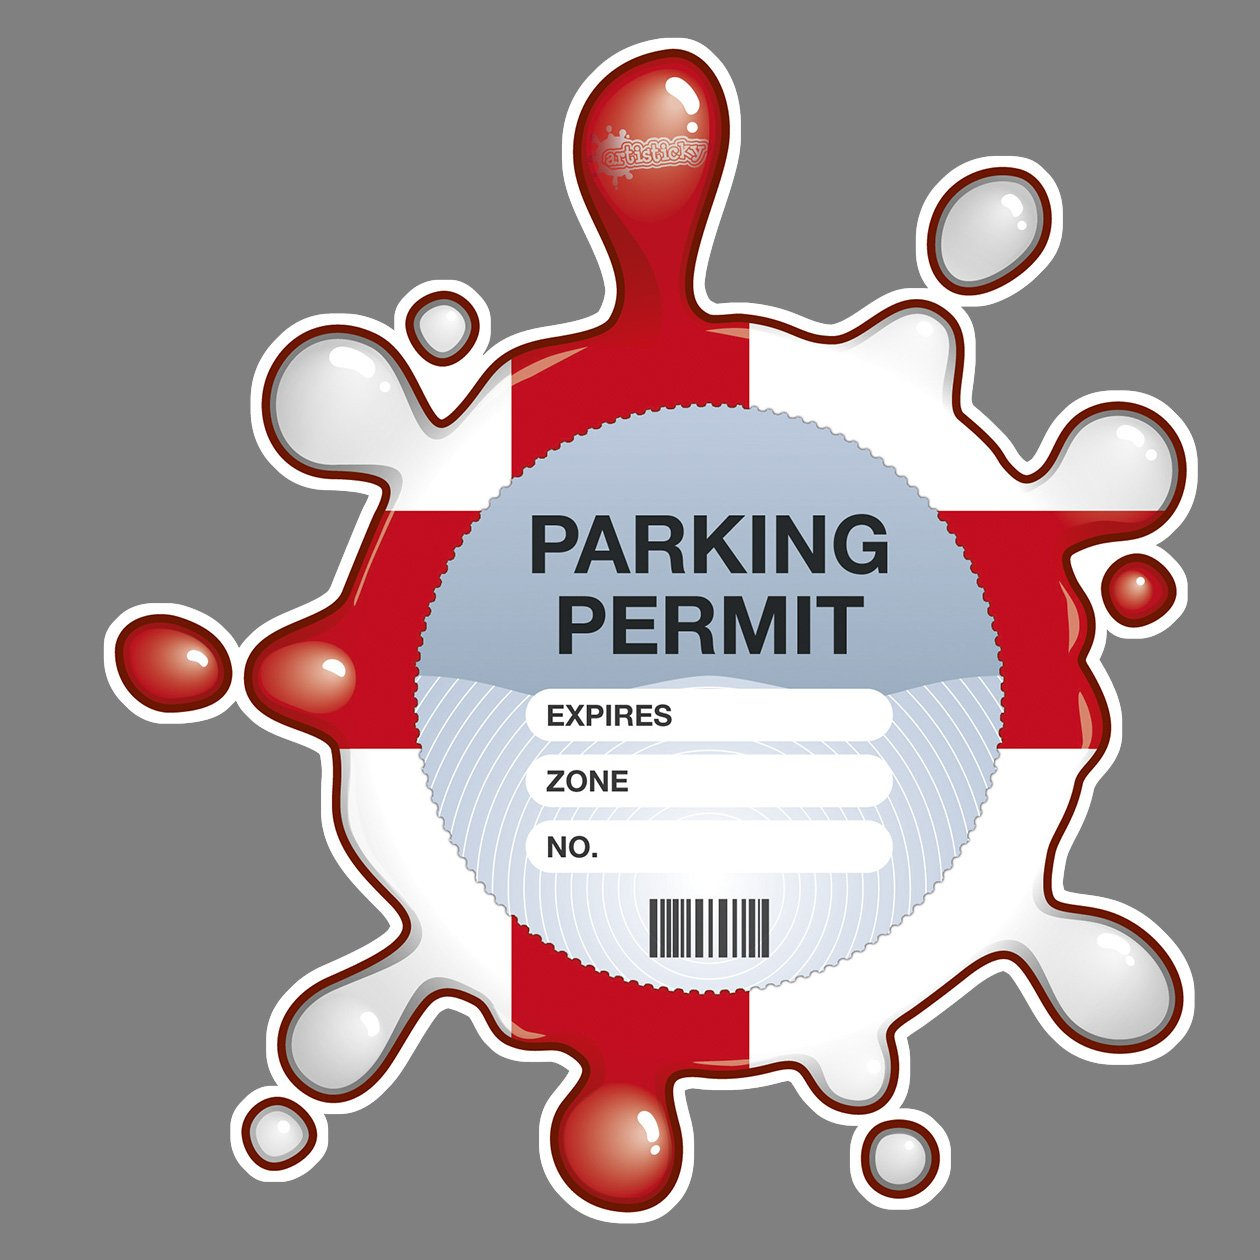 Parking Permit Holder Skin English Splat Self Cling PVC - Free UK Postage Artisticky AS-0039